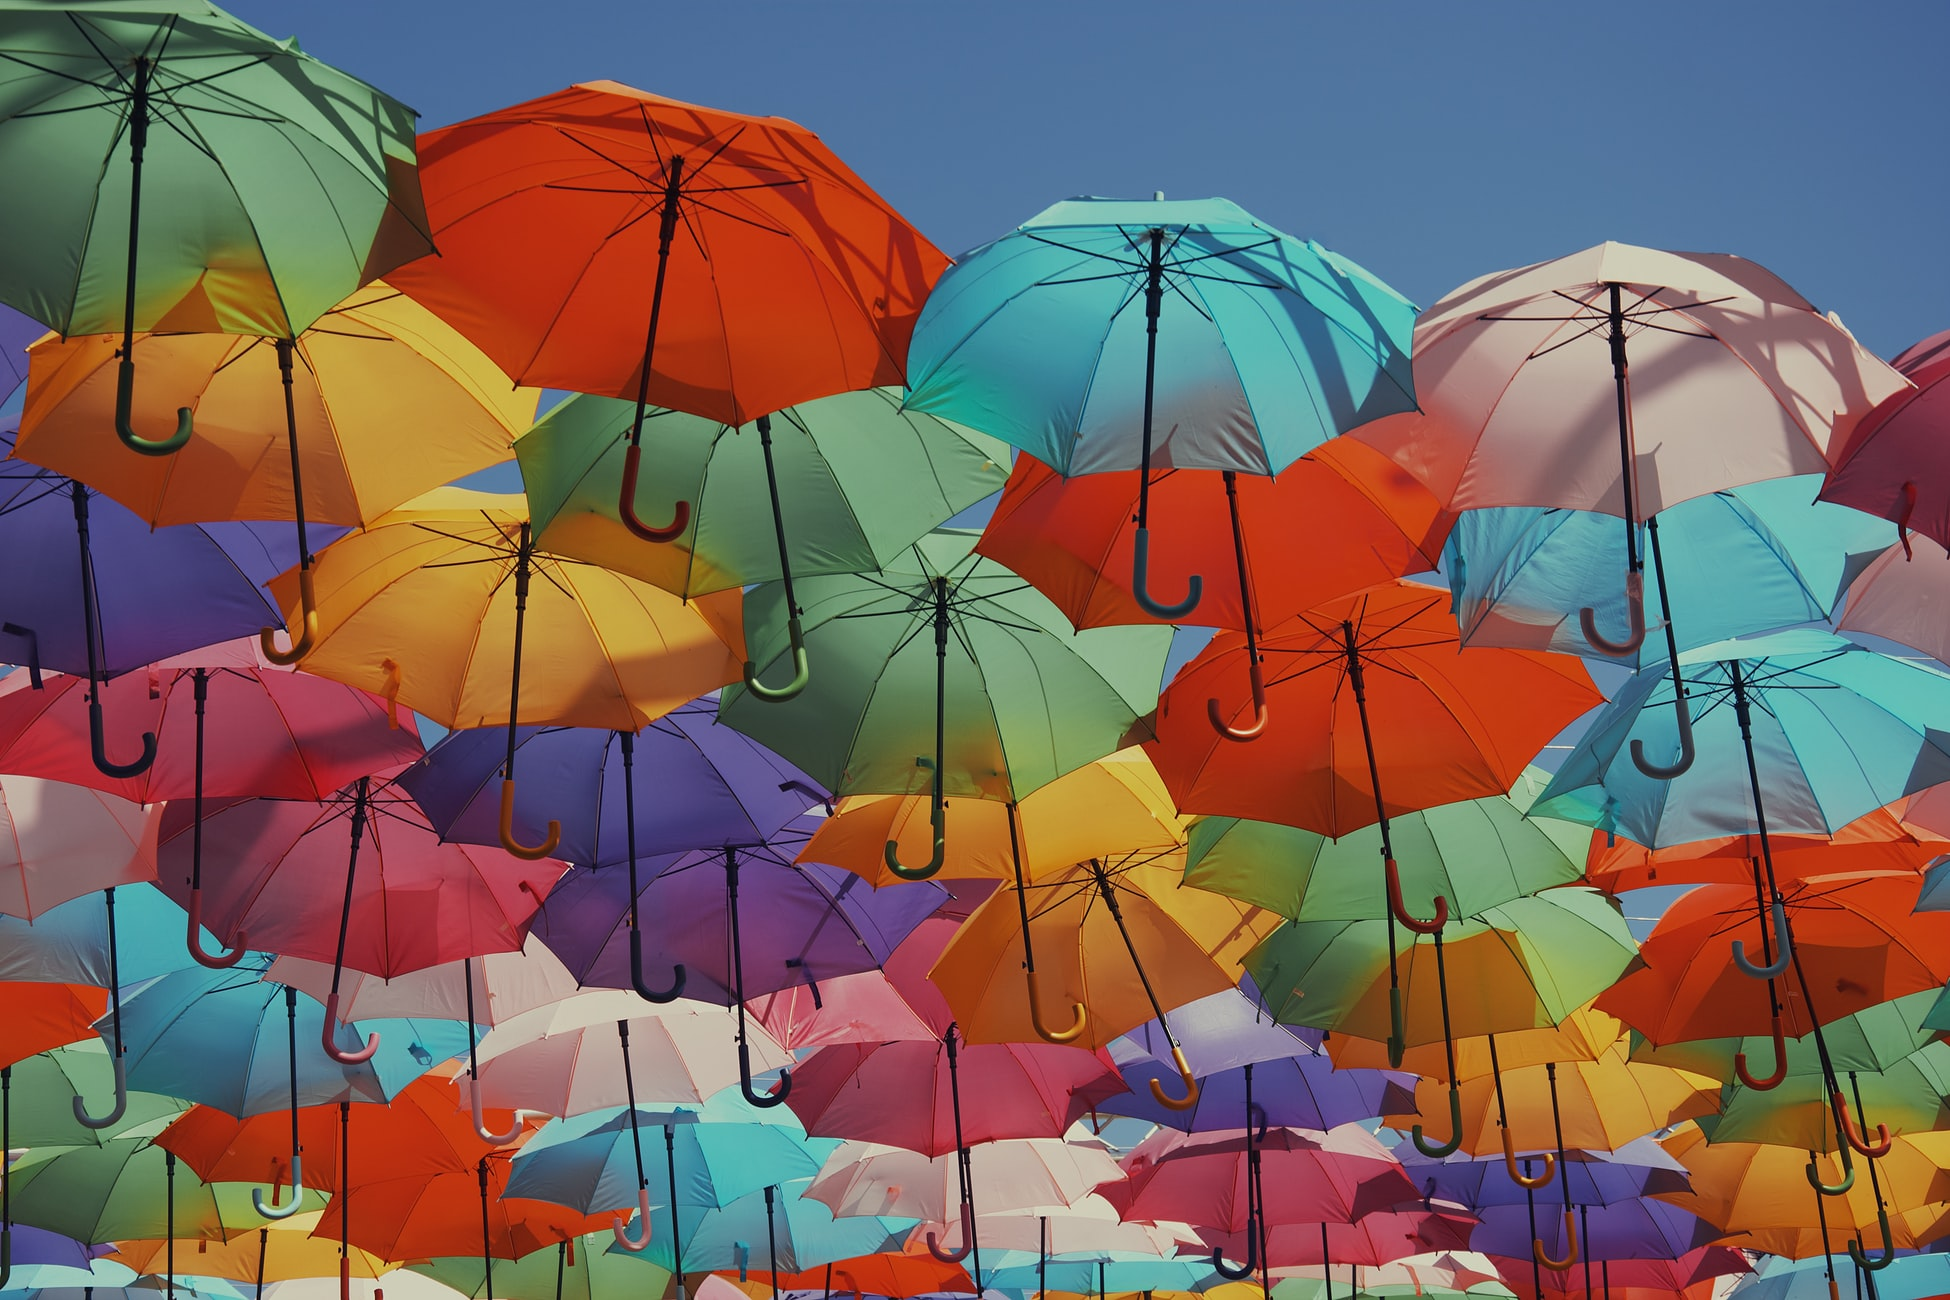 umbrella art in Aix-en-Provence, France